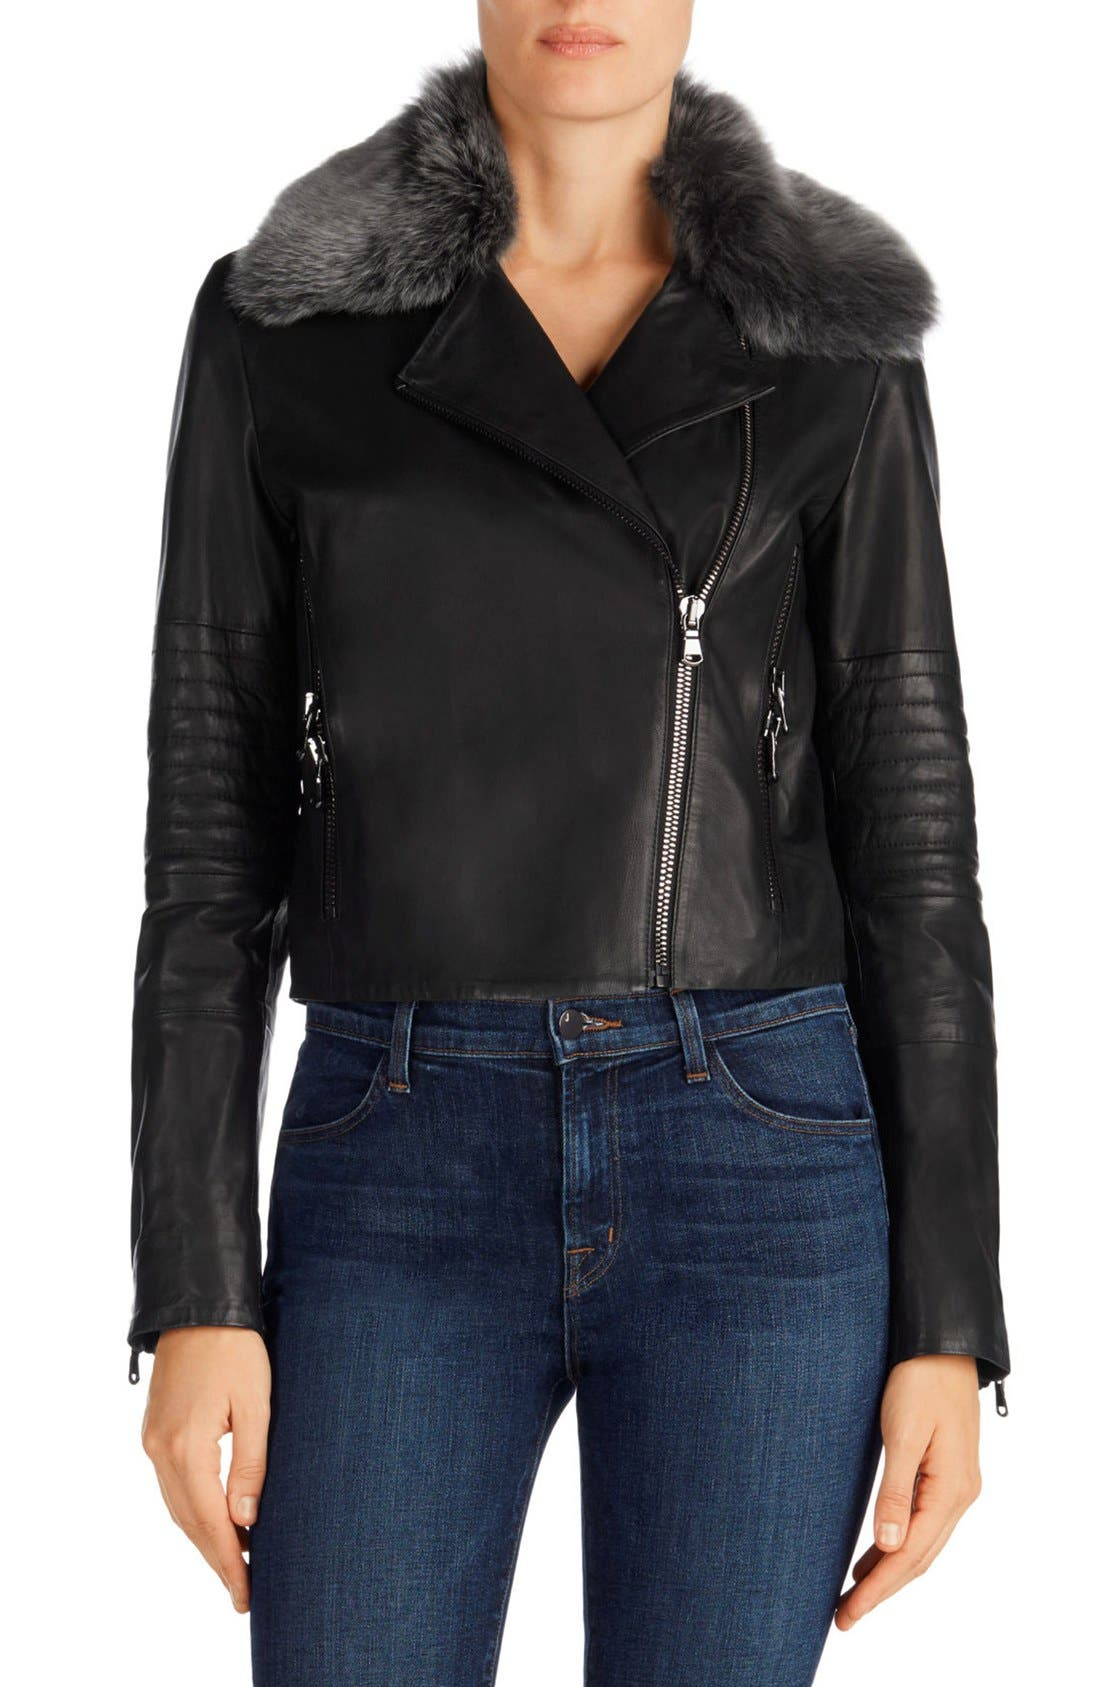 Main Image - J Brand Aiah Leather Moto Jacket with Detachable Lamb Shearling Collar